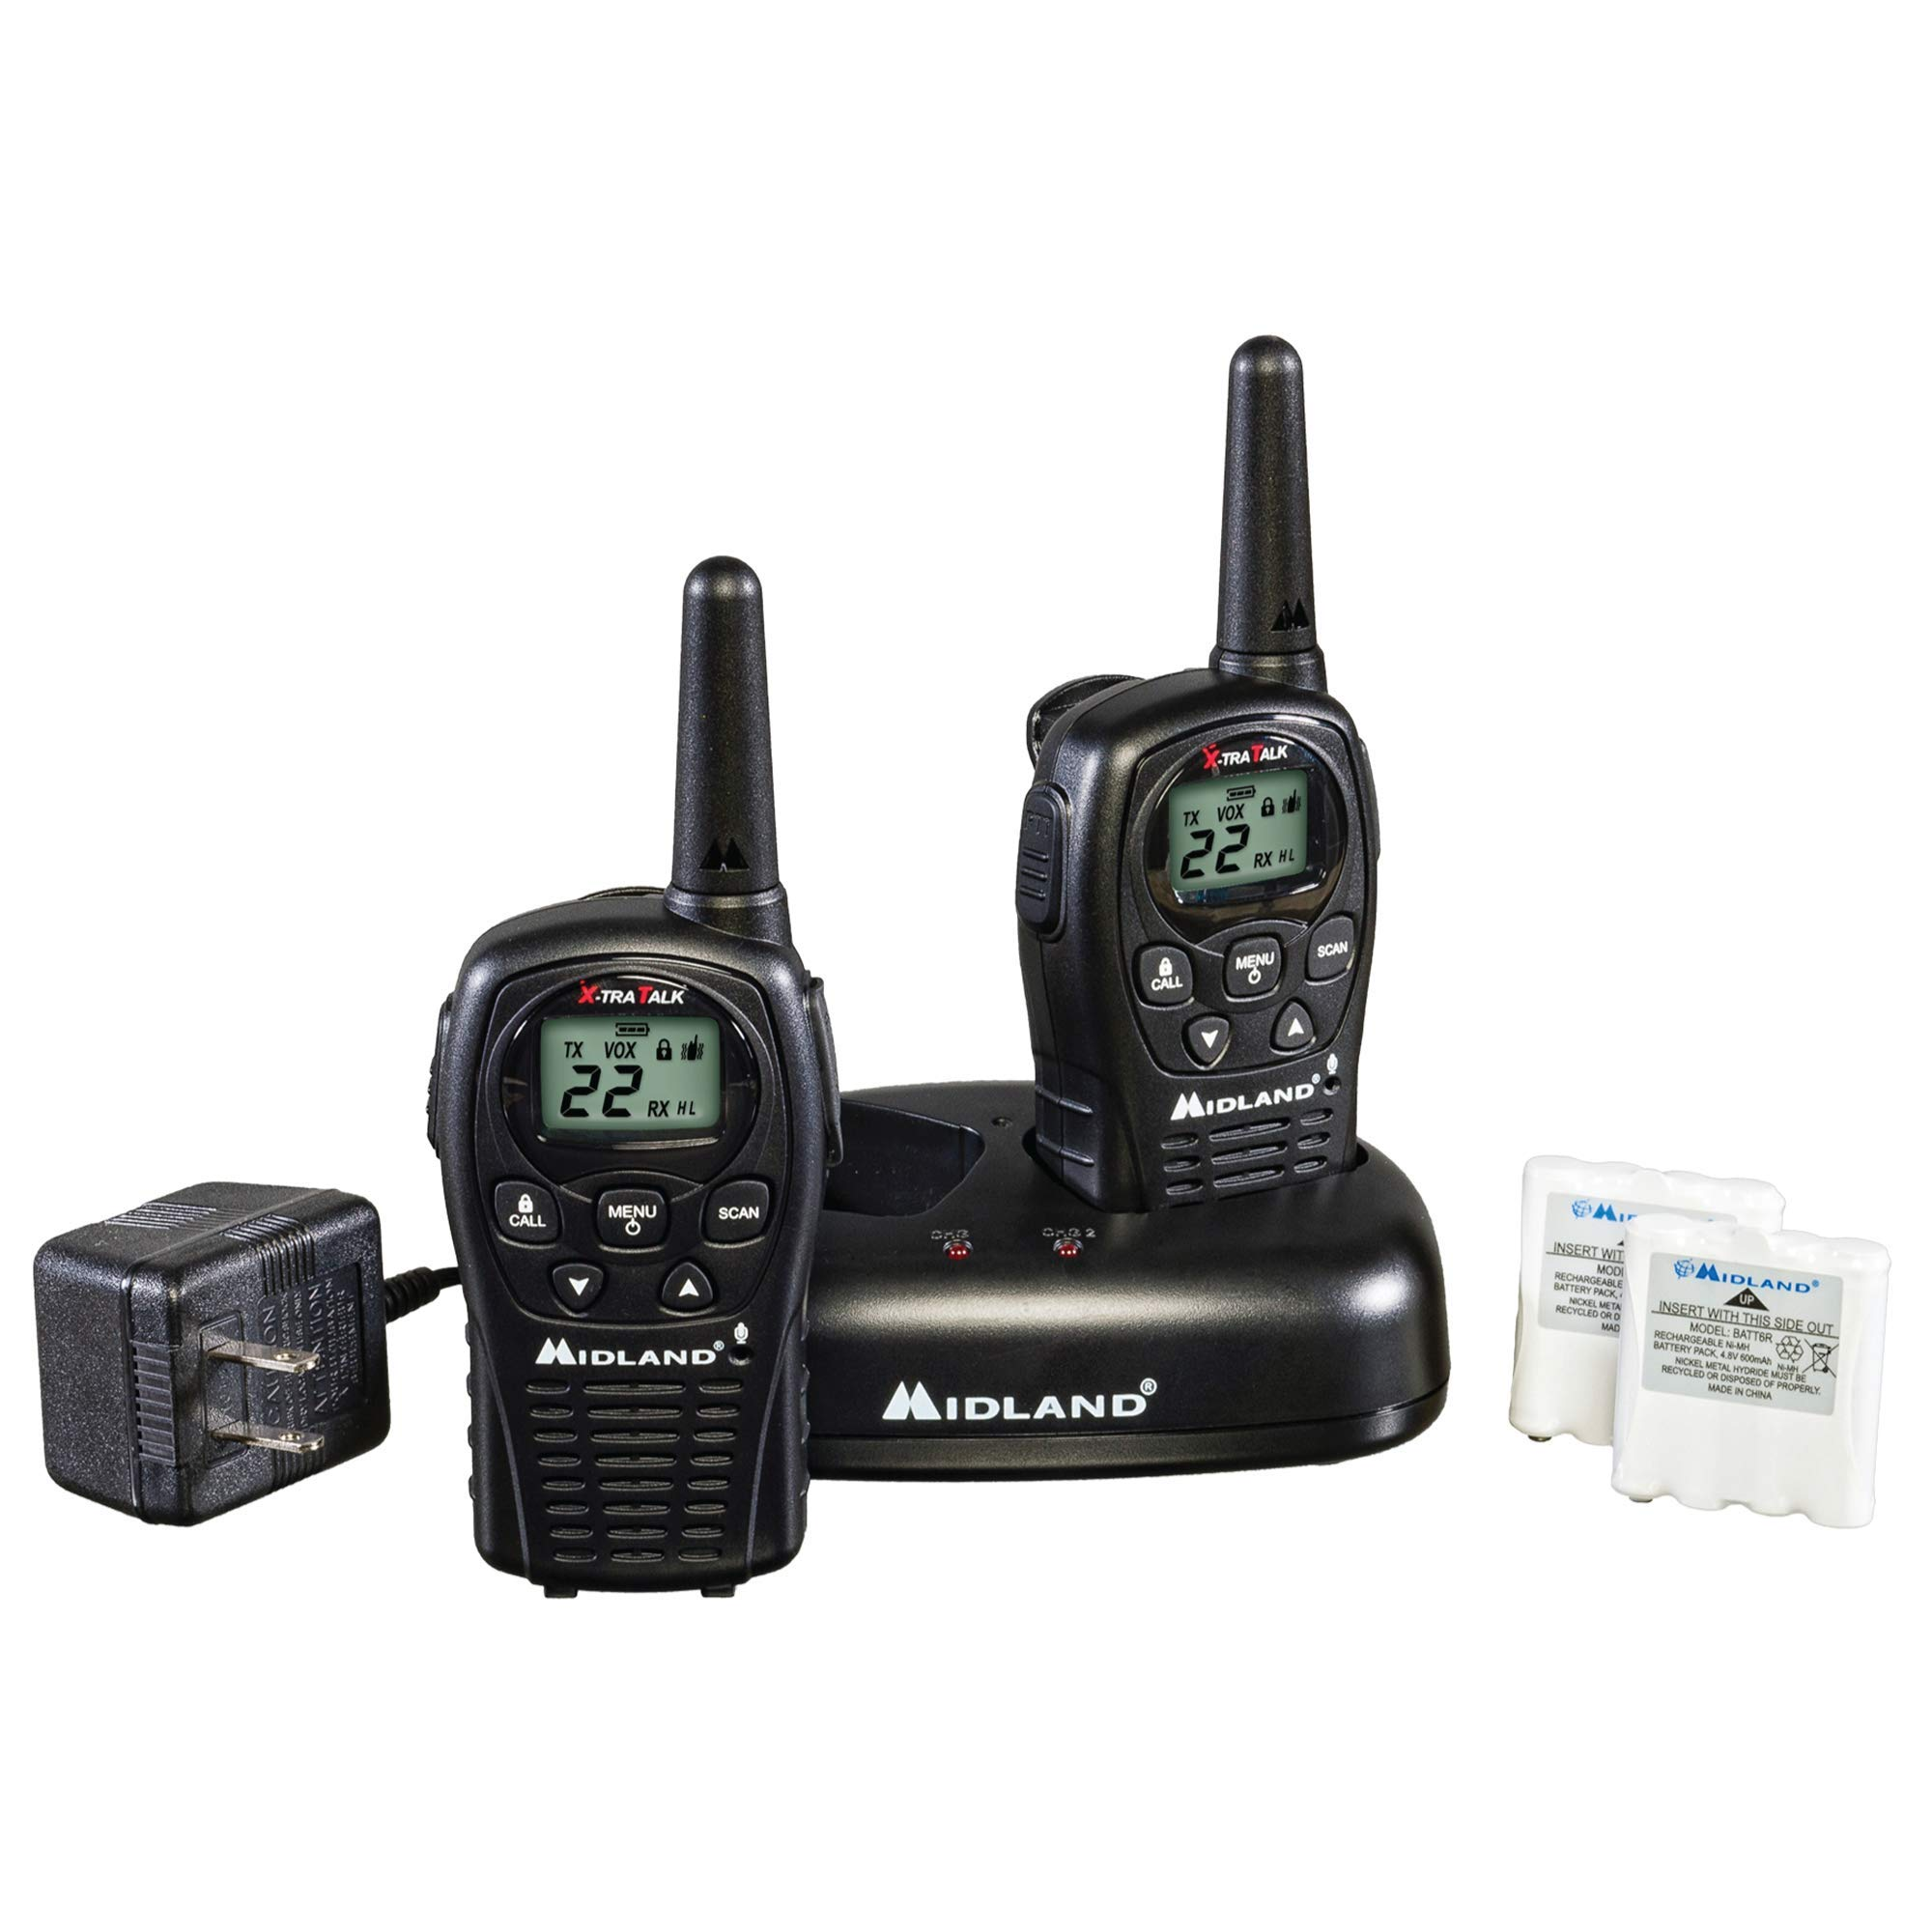 Midland - LXT500VP3, 22 Channel FRS Two-Way Radio with Channel Scan - Up to 24 Mile Range Walkie Talkie, Silent Operation, Water Resistant (Pair Pack) (Black) by Midland